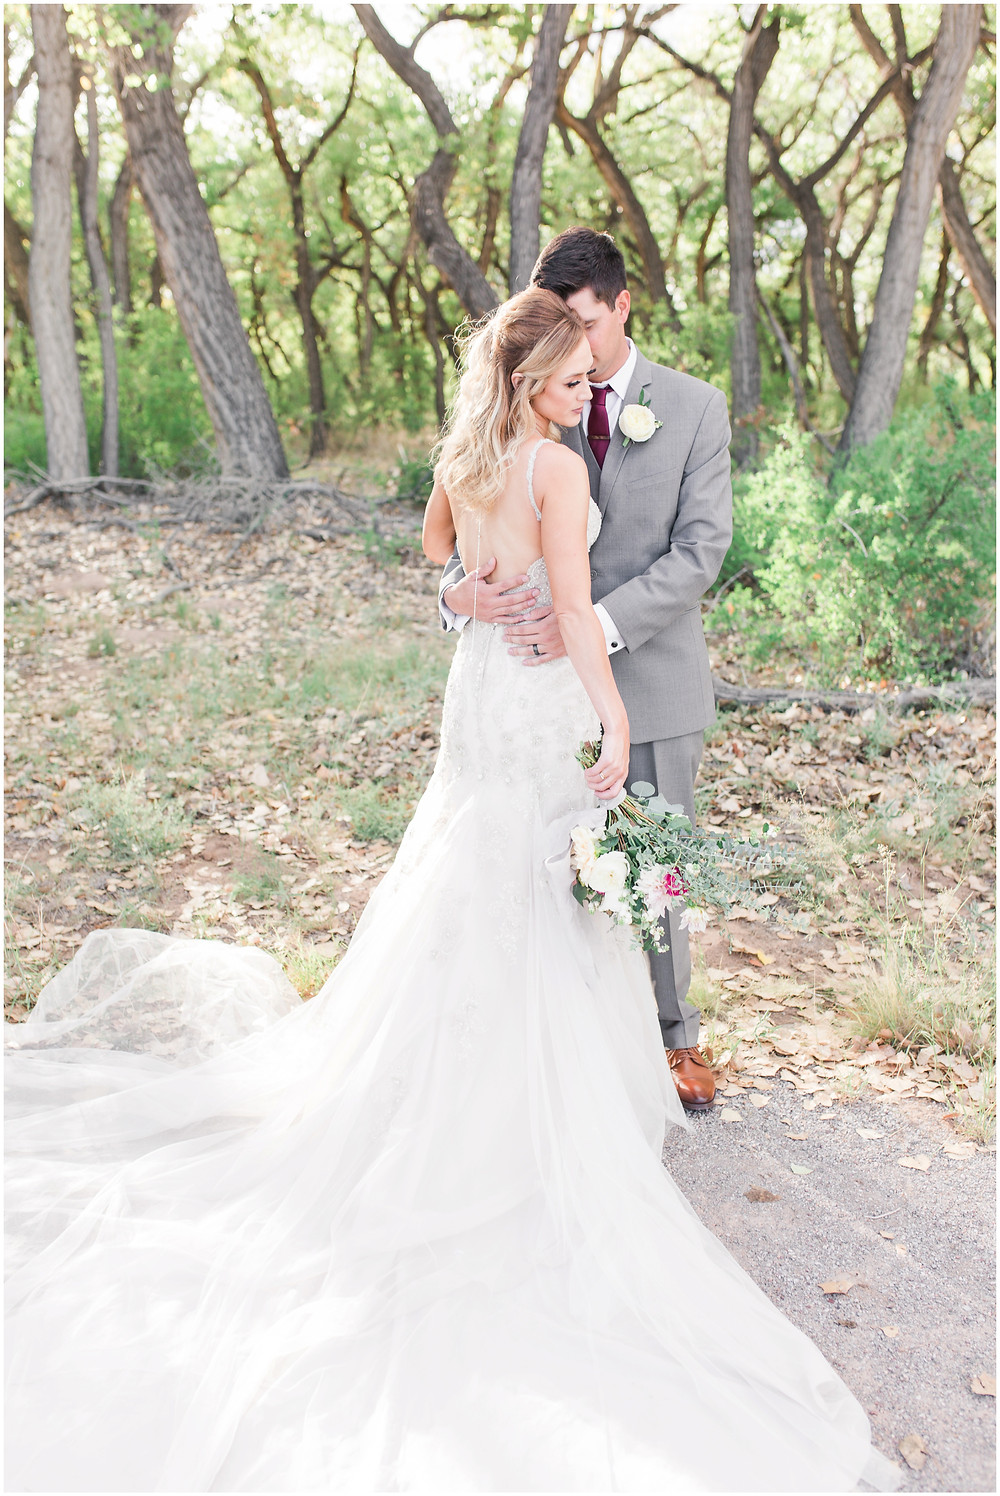 Wedding at Hyatt Tamaya. Outdoor wedding New Mexco. New Mexico Wedding photographer. maura Jane photography. burgundy wedding. bride and groom photos. backless wedding dress